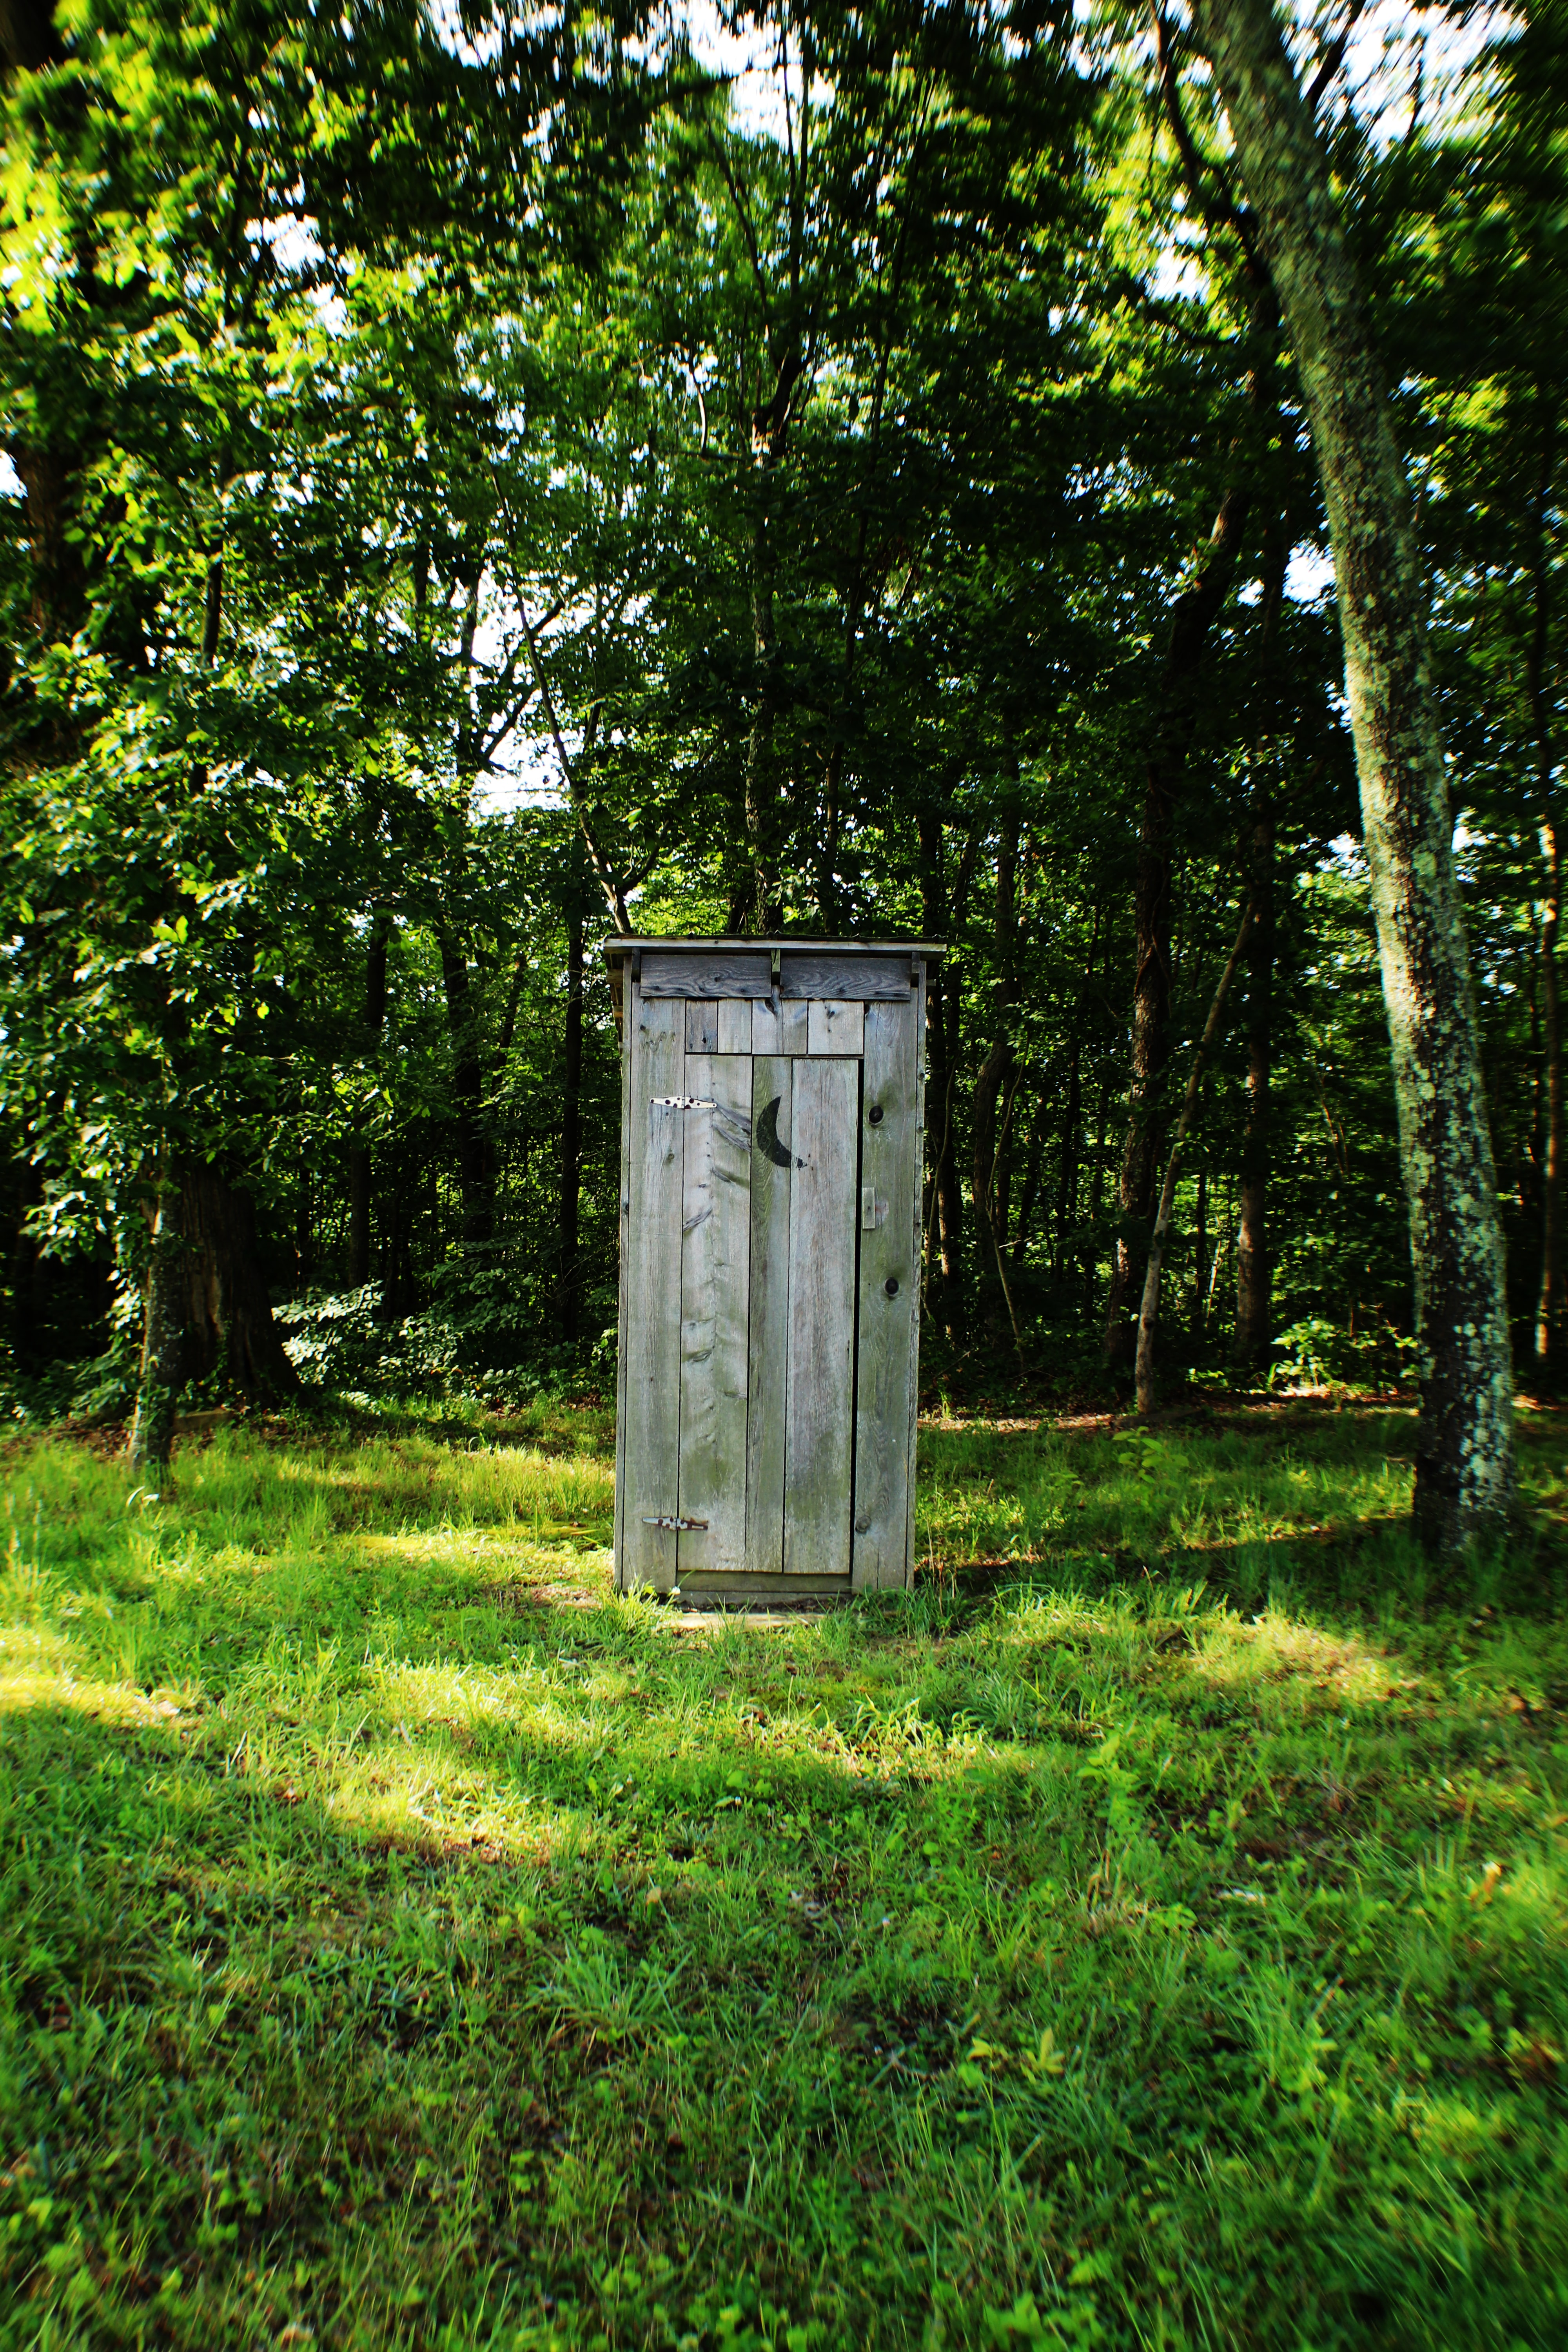 Wooden outhouse in a grassy forest field